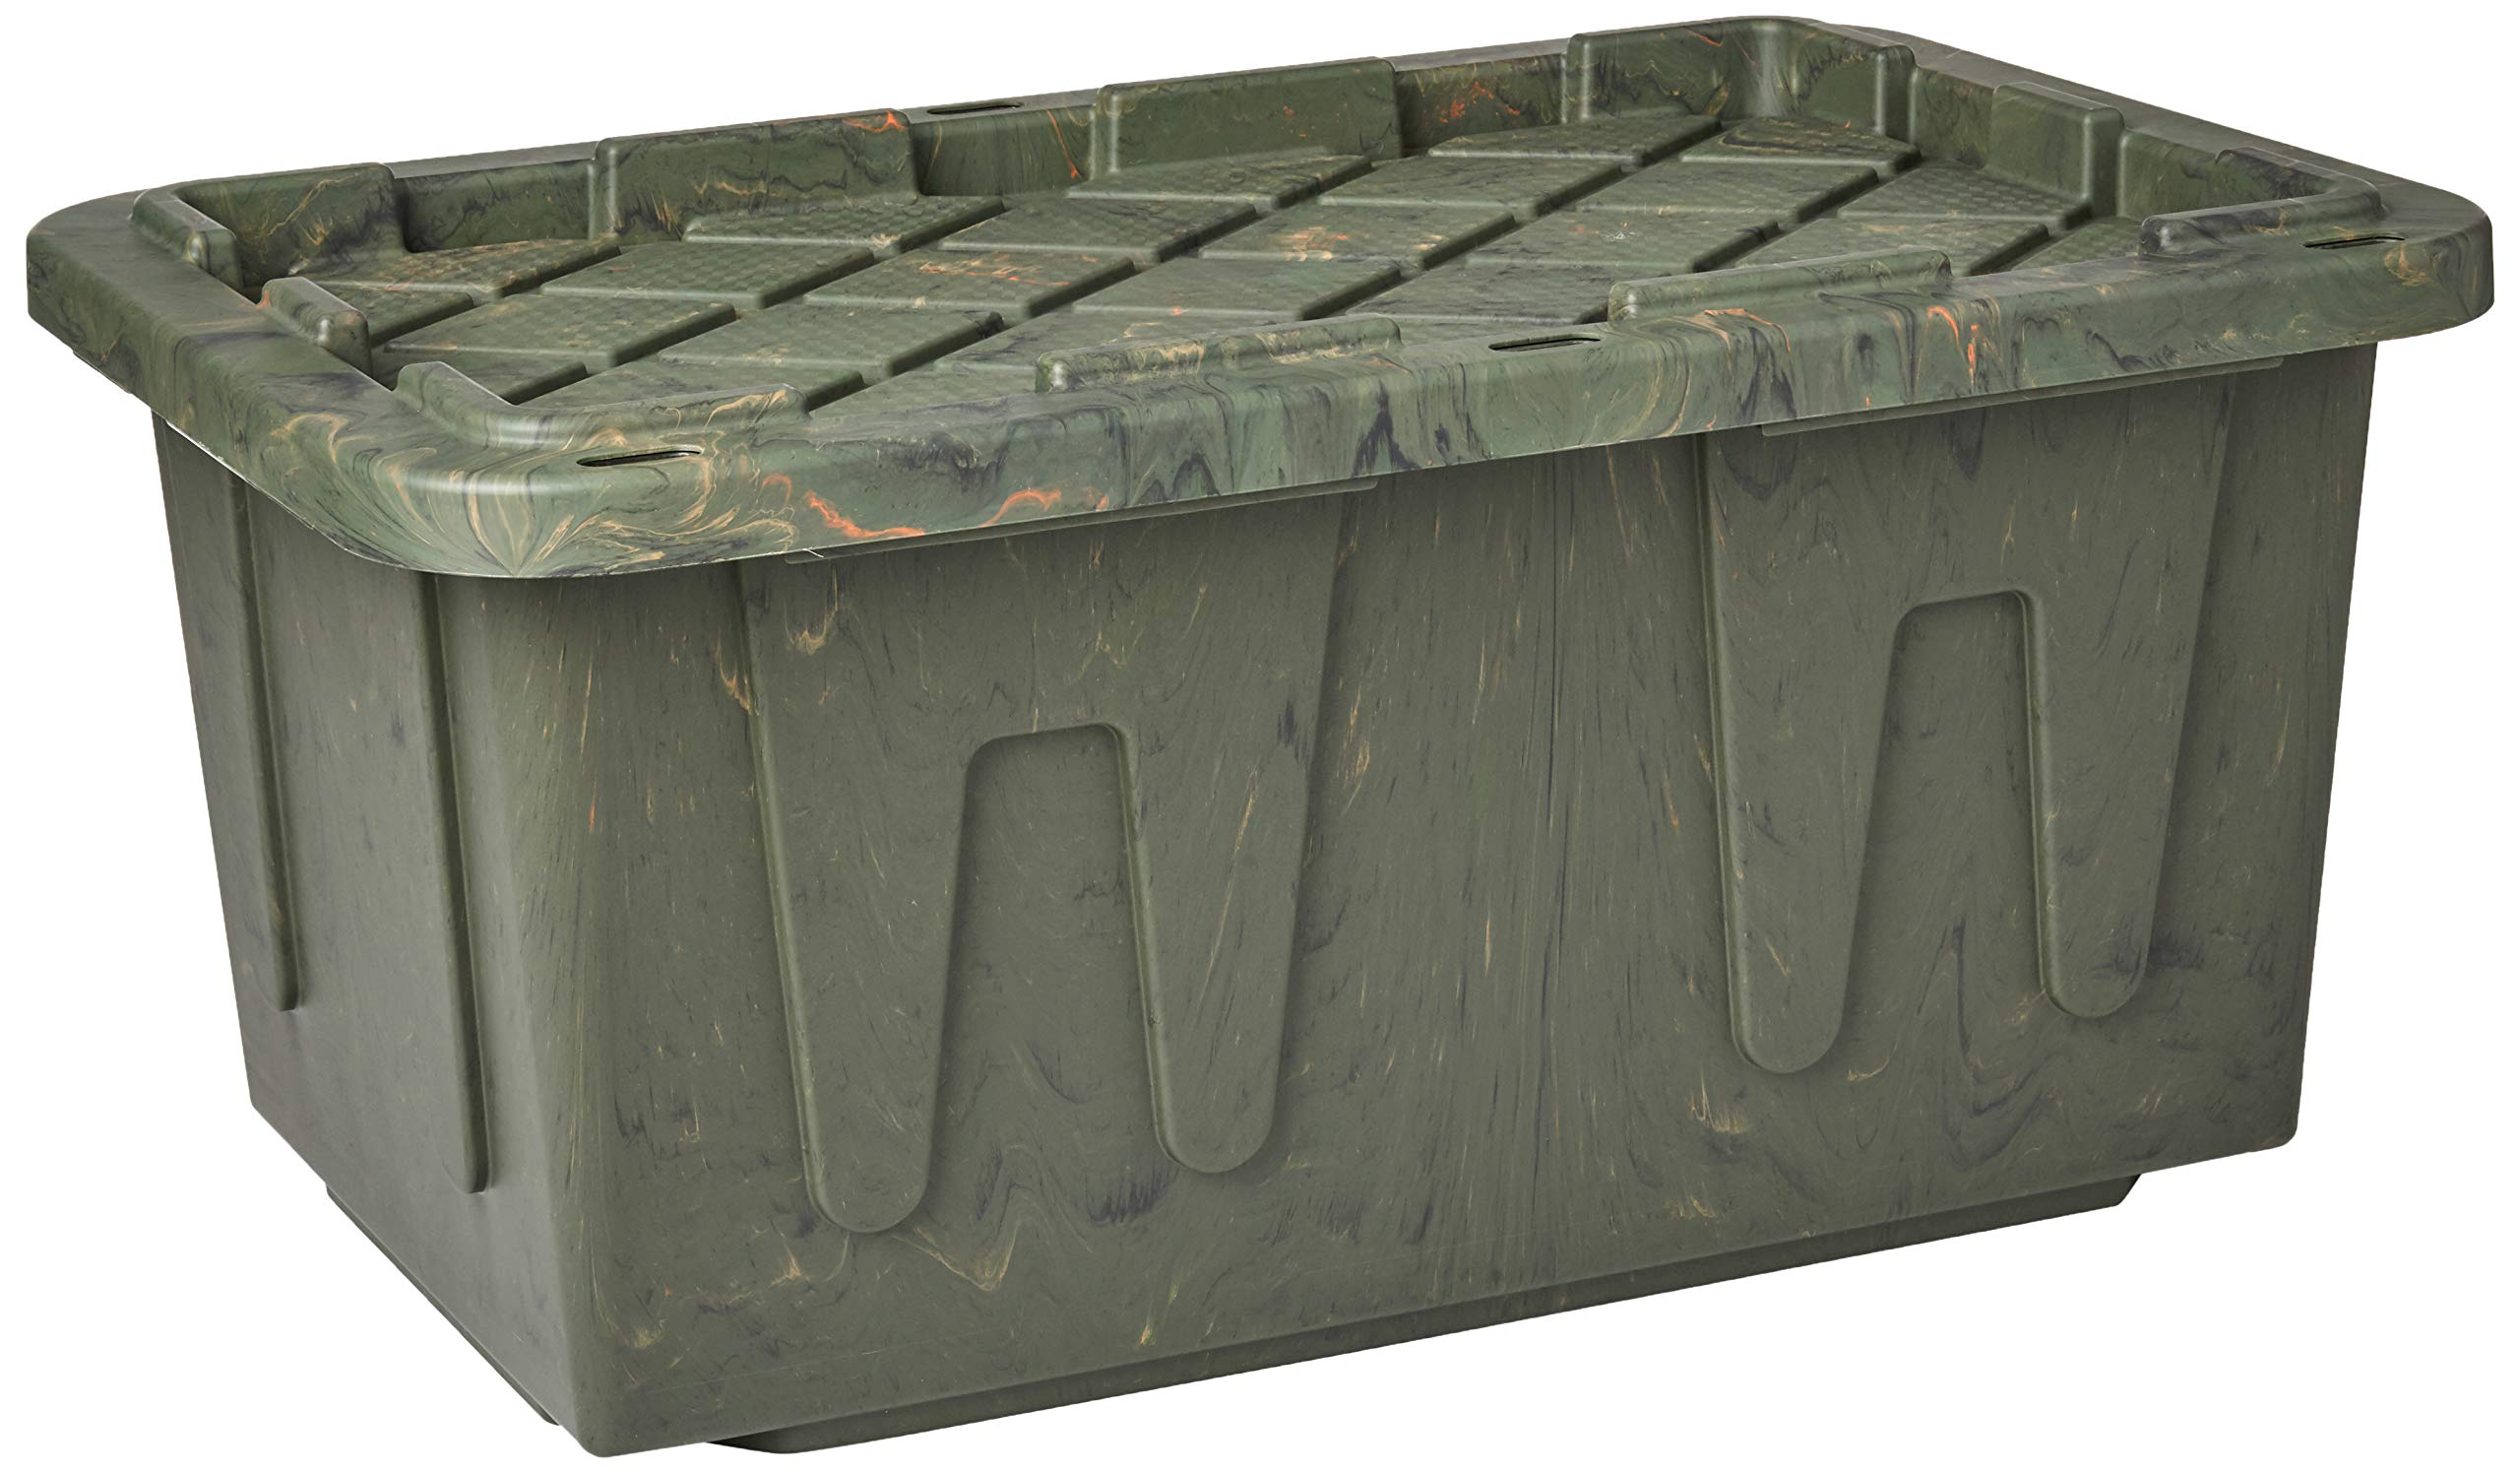 Homz Durabilt Tough Storage Tote Box, 27 Gallon, Camo With Lid, Stackable, 4-Pack by Homz